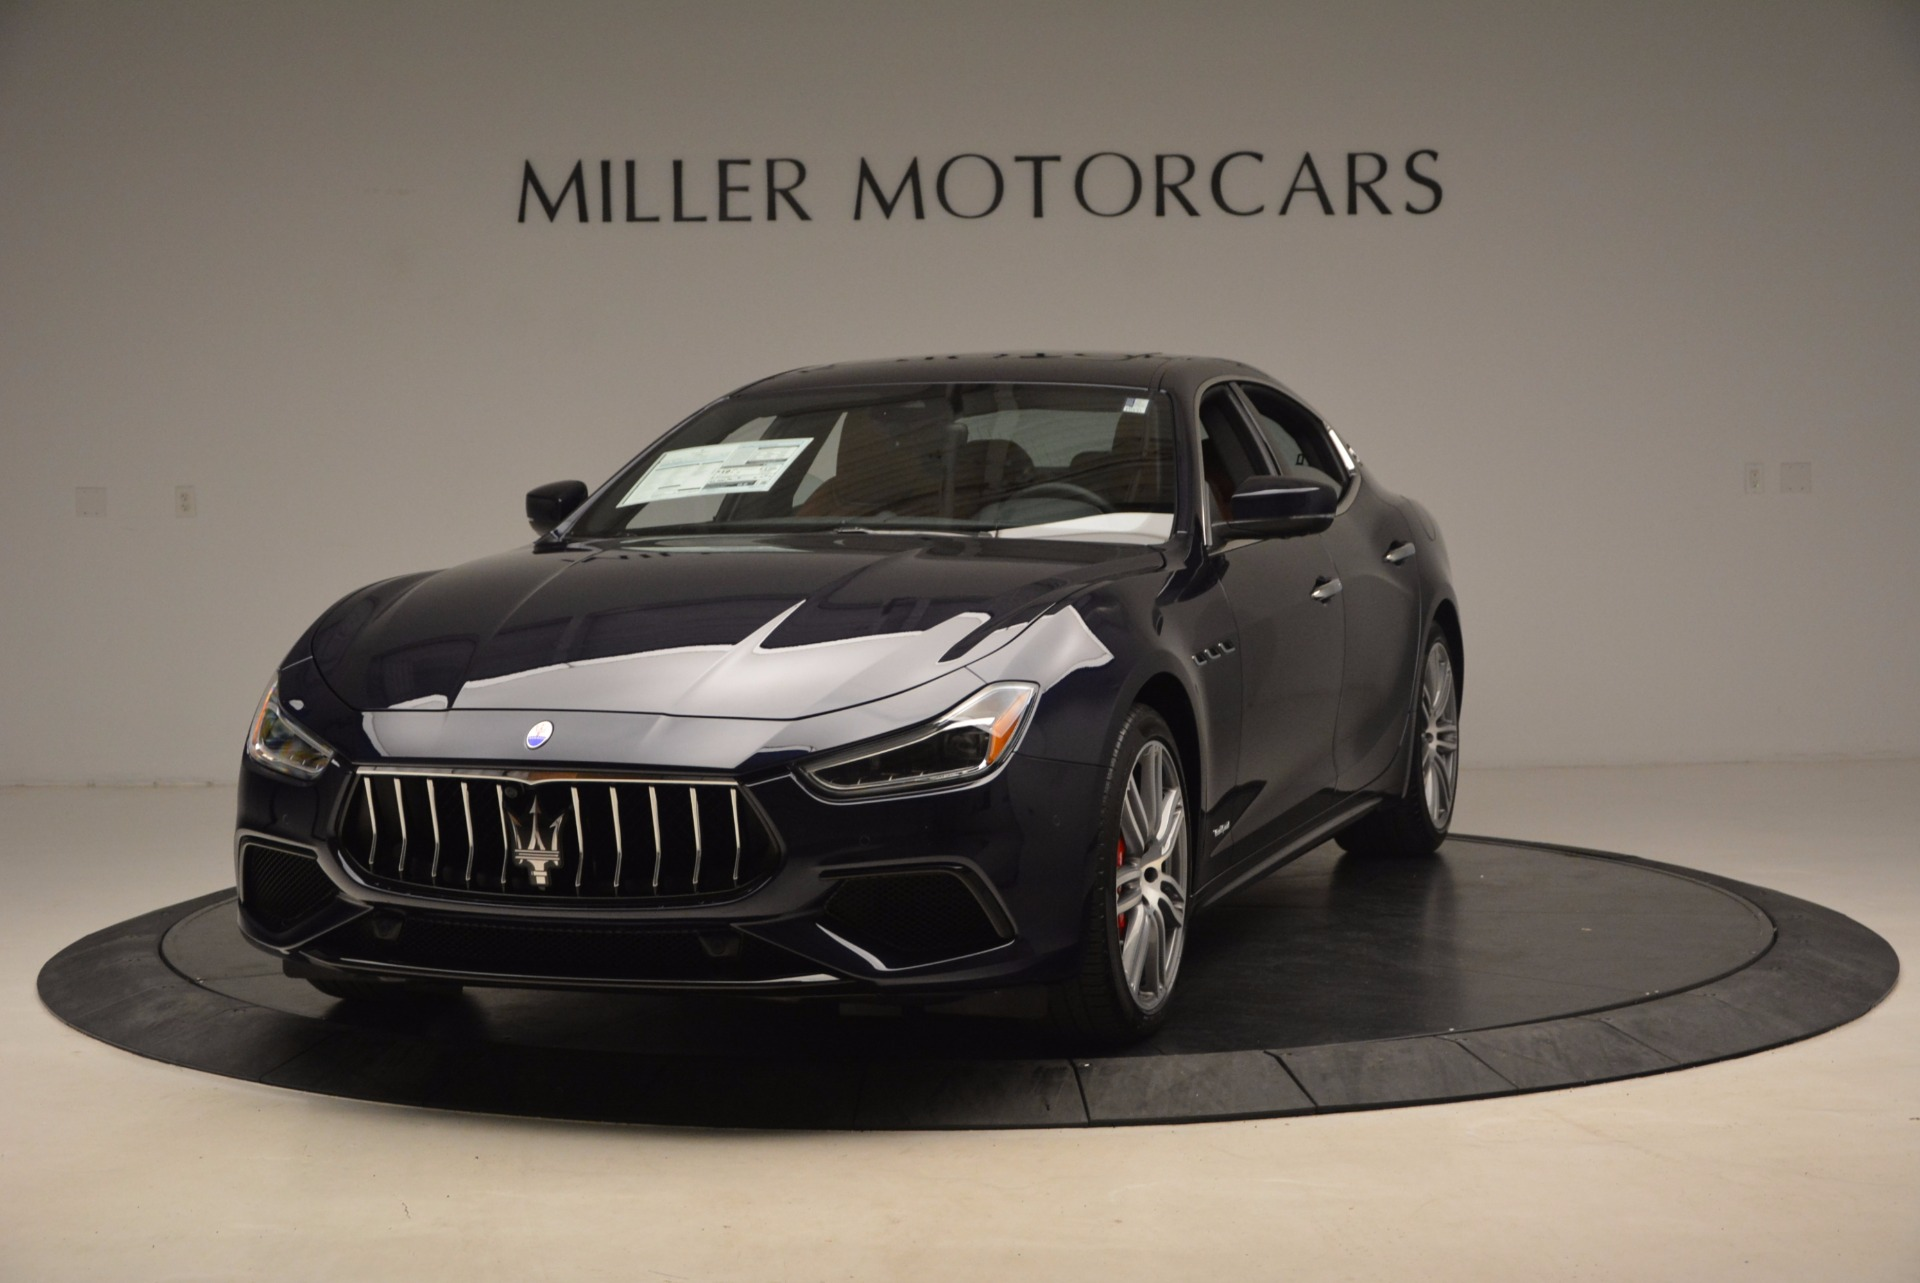 New 2018 Maserati Ghibli S Q4 Gransport For Sale In Greenwich, CT 1562_main